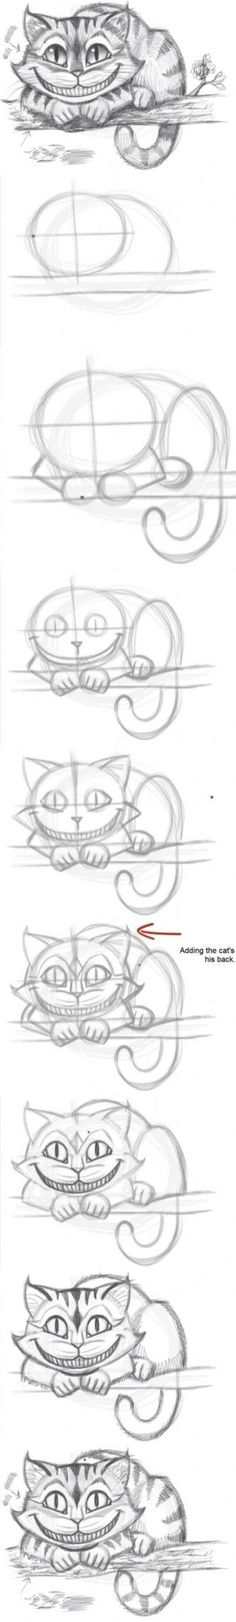 DIY Easily Draw the Cheshire Cat Tutorial | Drawing Tips, Drawing Techniques, Drawing Ideas, Drawing Art, Disney Drawing Tutorial, Drawing Stuff, Easy Cat Drawing, Sketch Ideas, Sketch Drawing